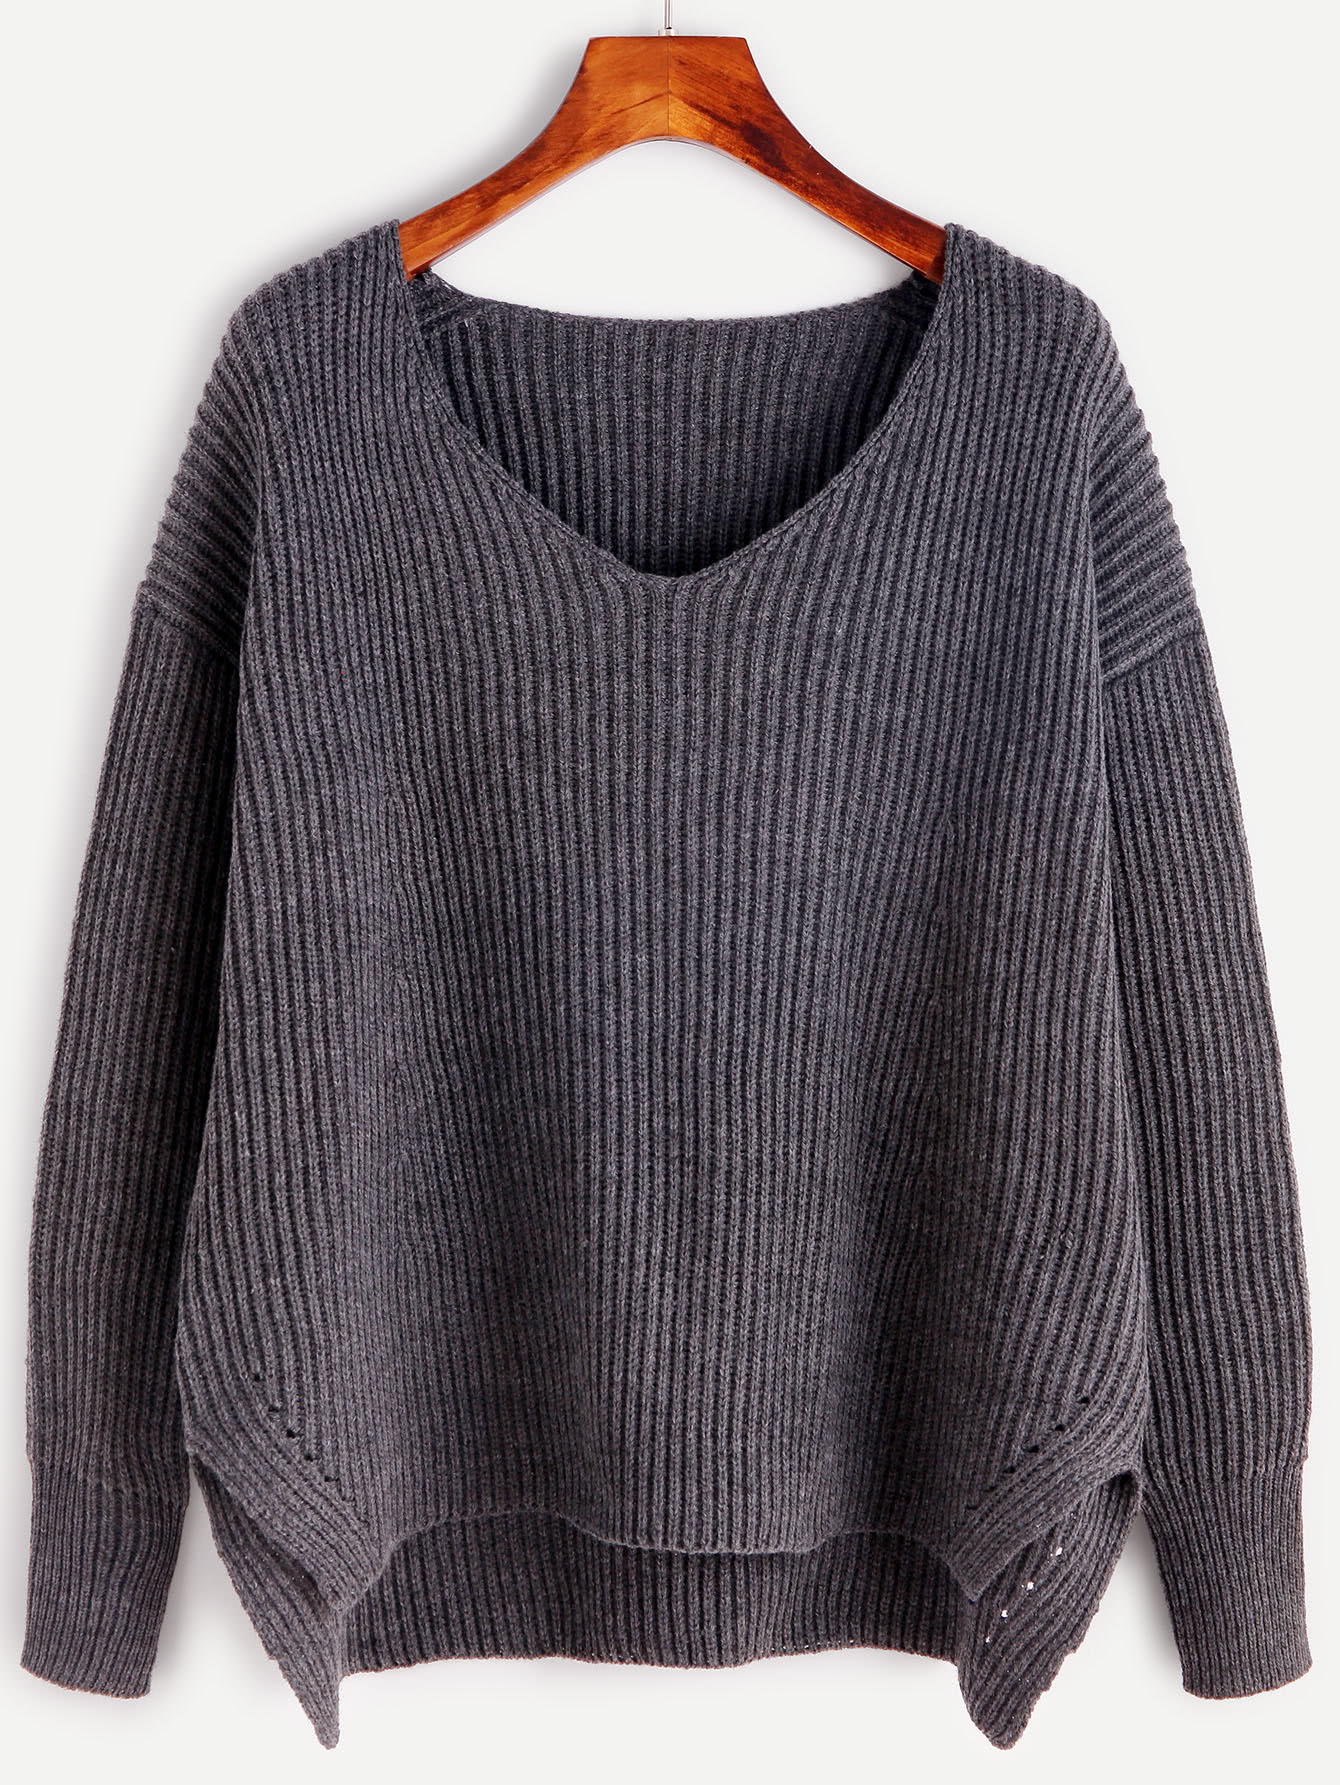 Grey Ribbed Knit Slit High Low Sweater sweater161011401